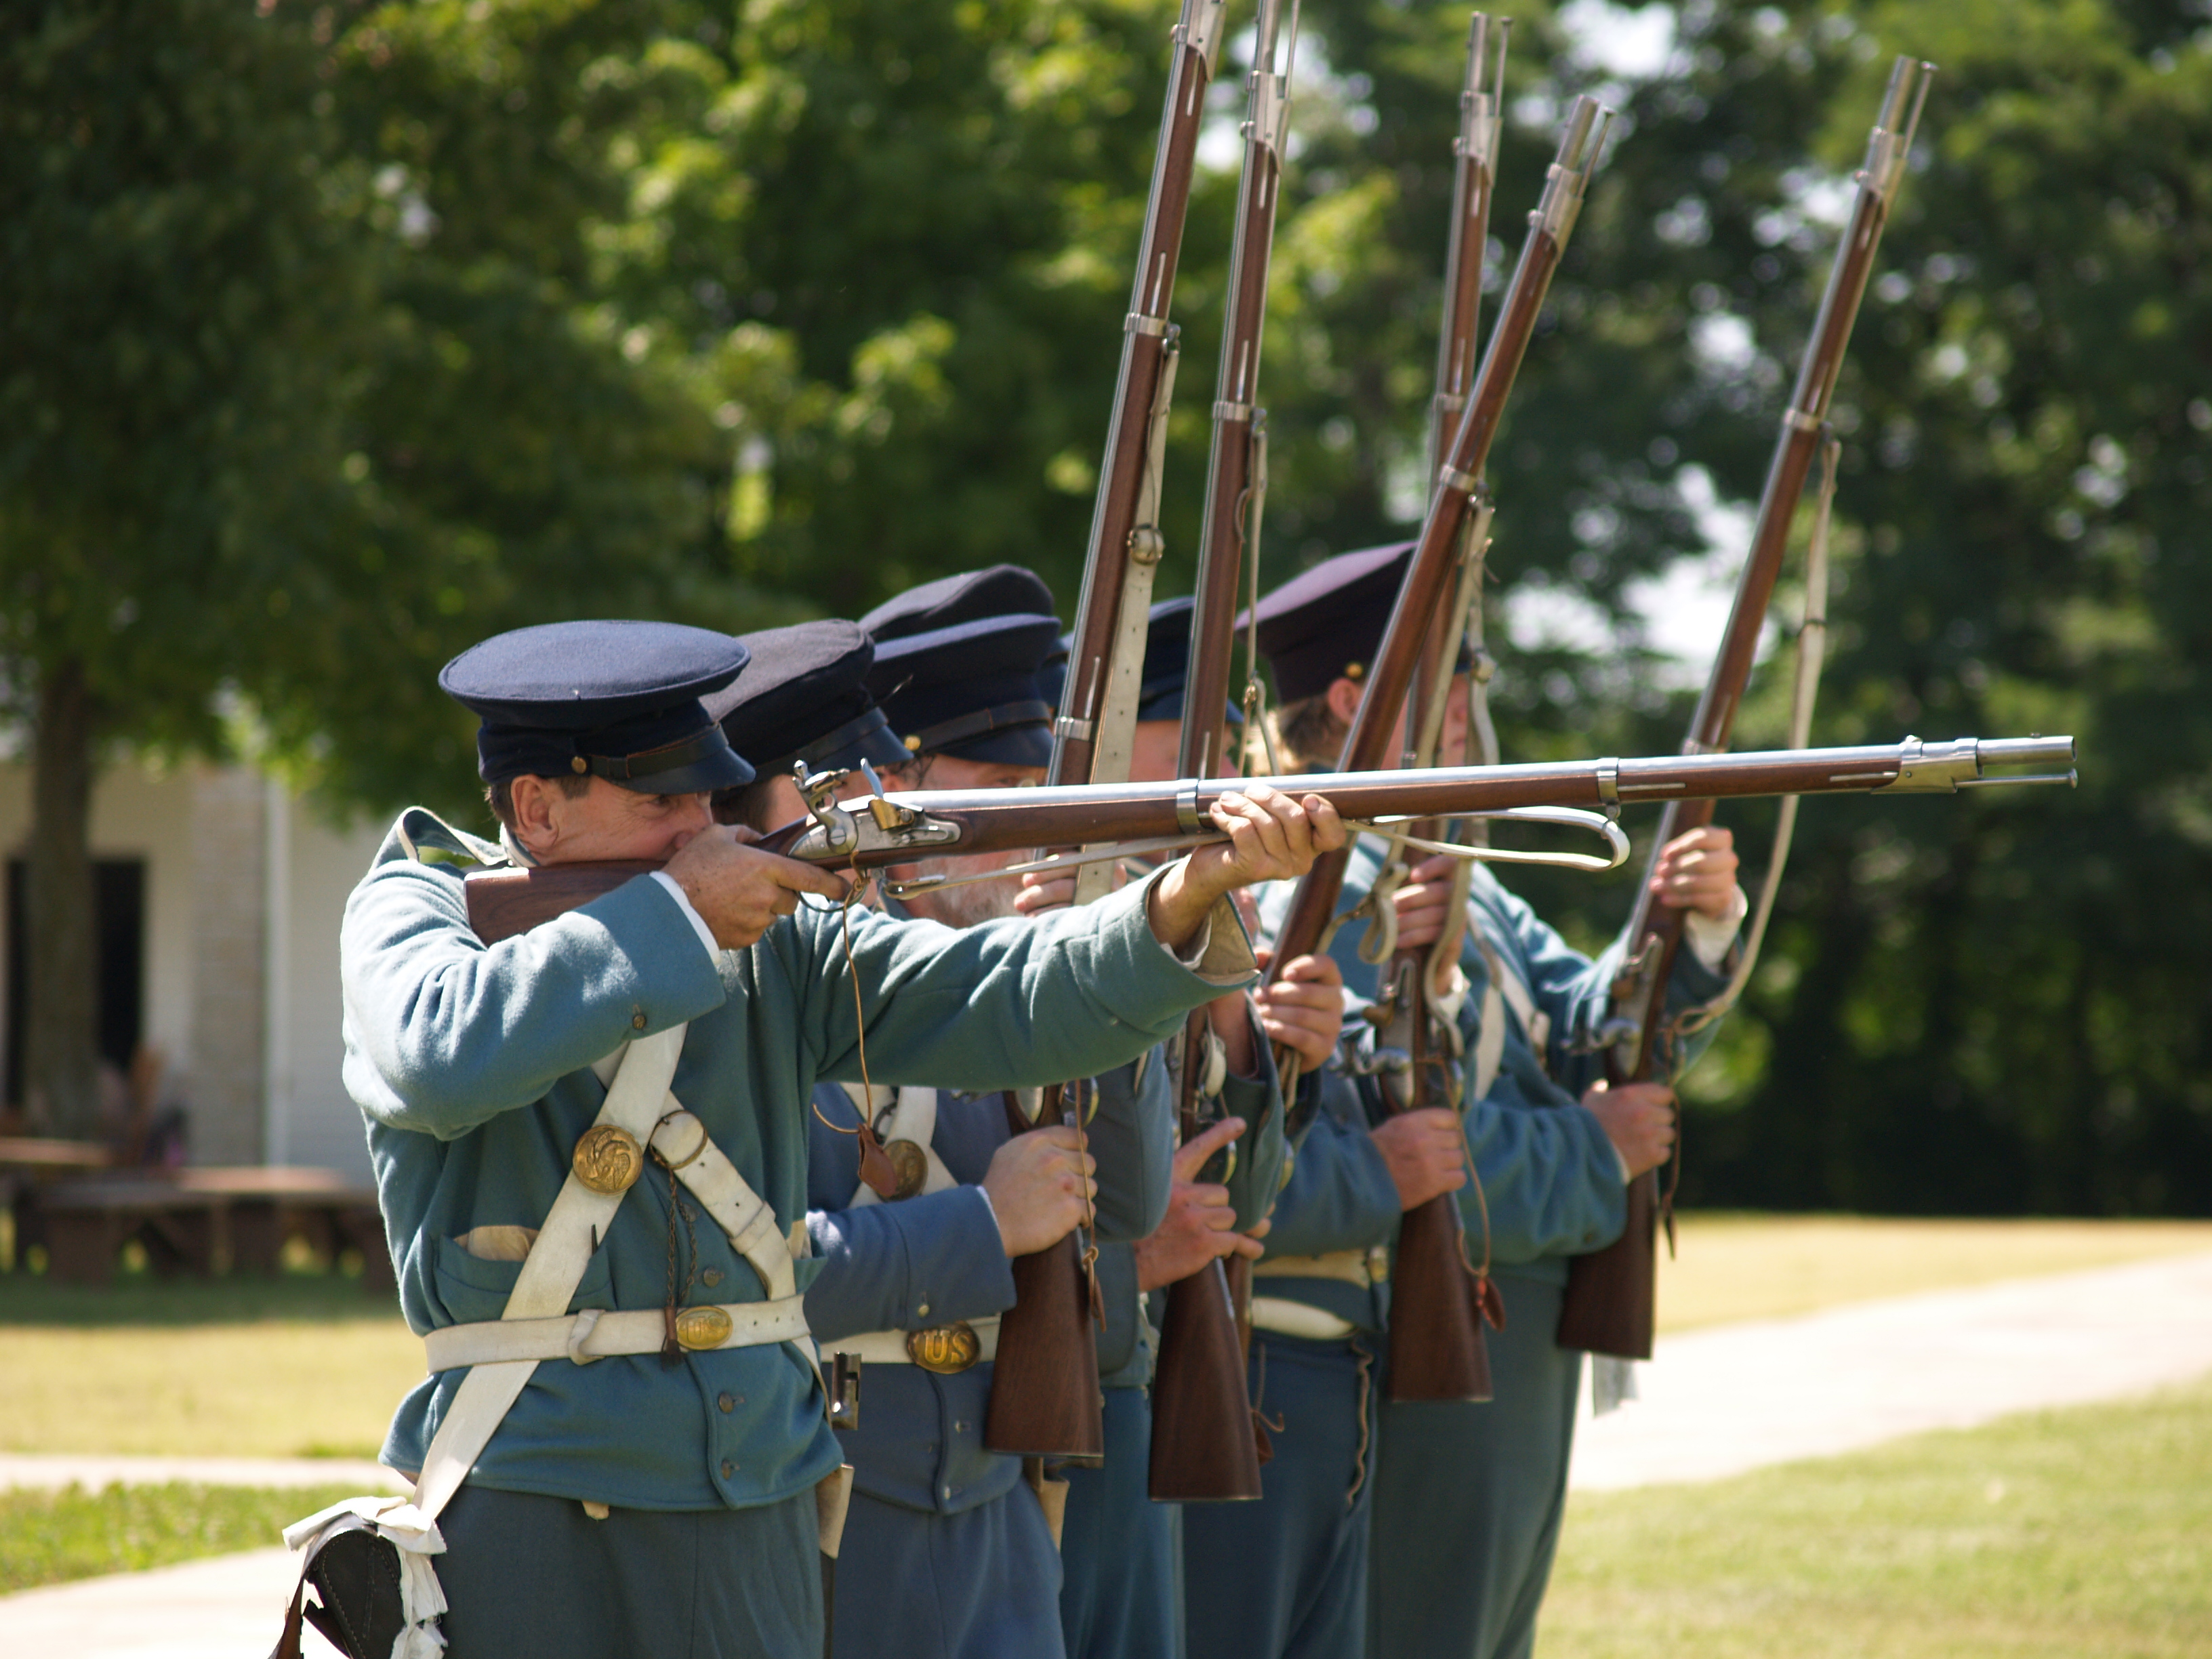 Infantry firing muskets